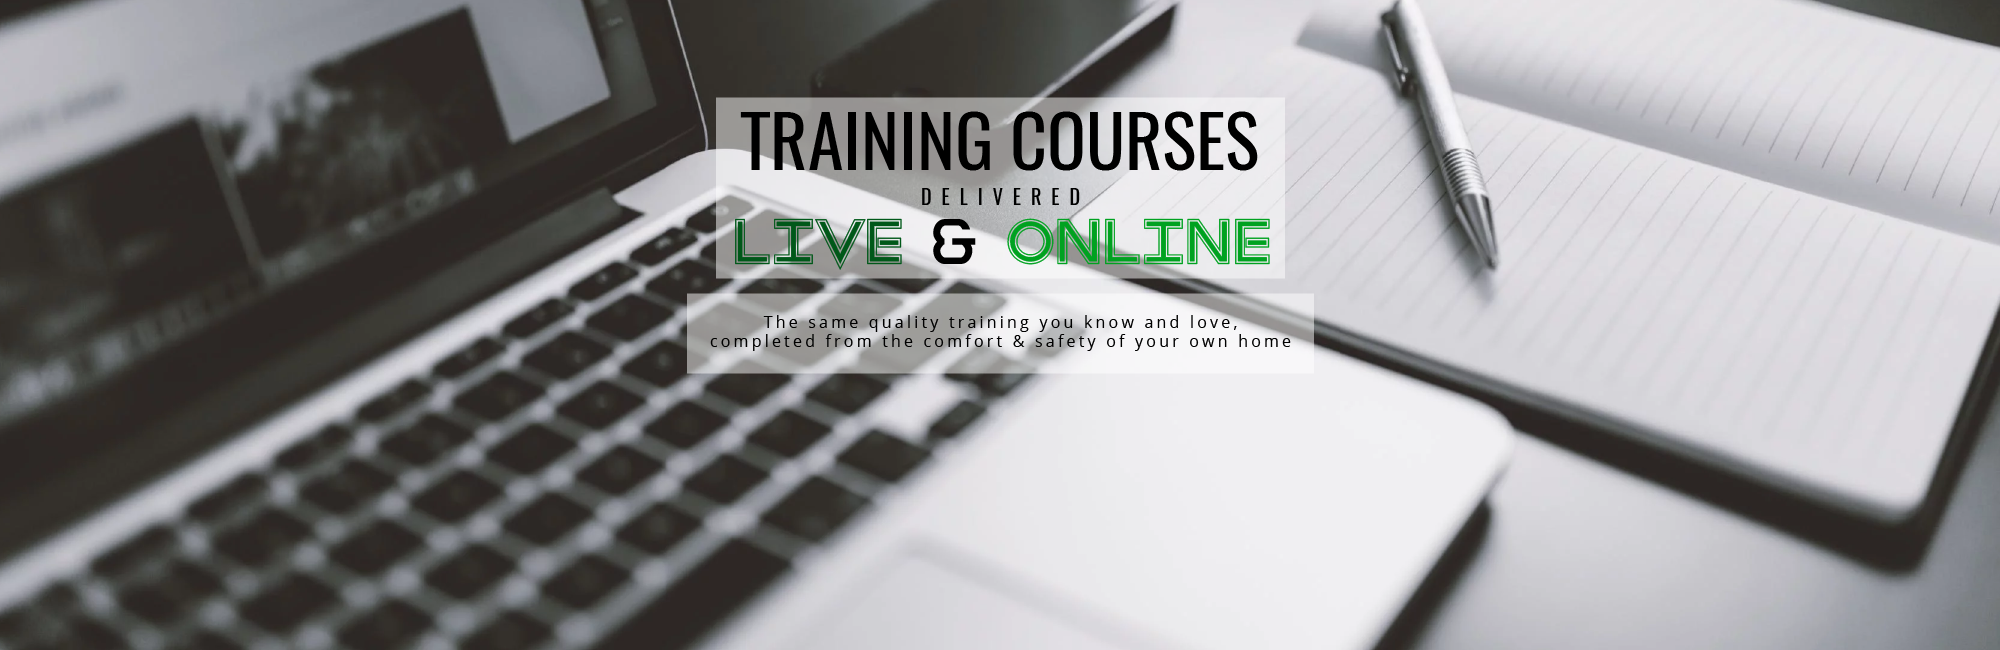 <a href='https://www.equipegroup.com/training/online-courses.html' class='sy-caption-green'>More information</a>